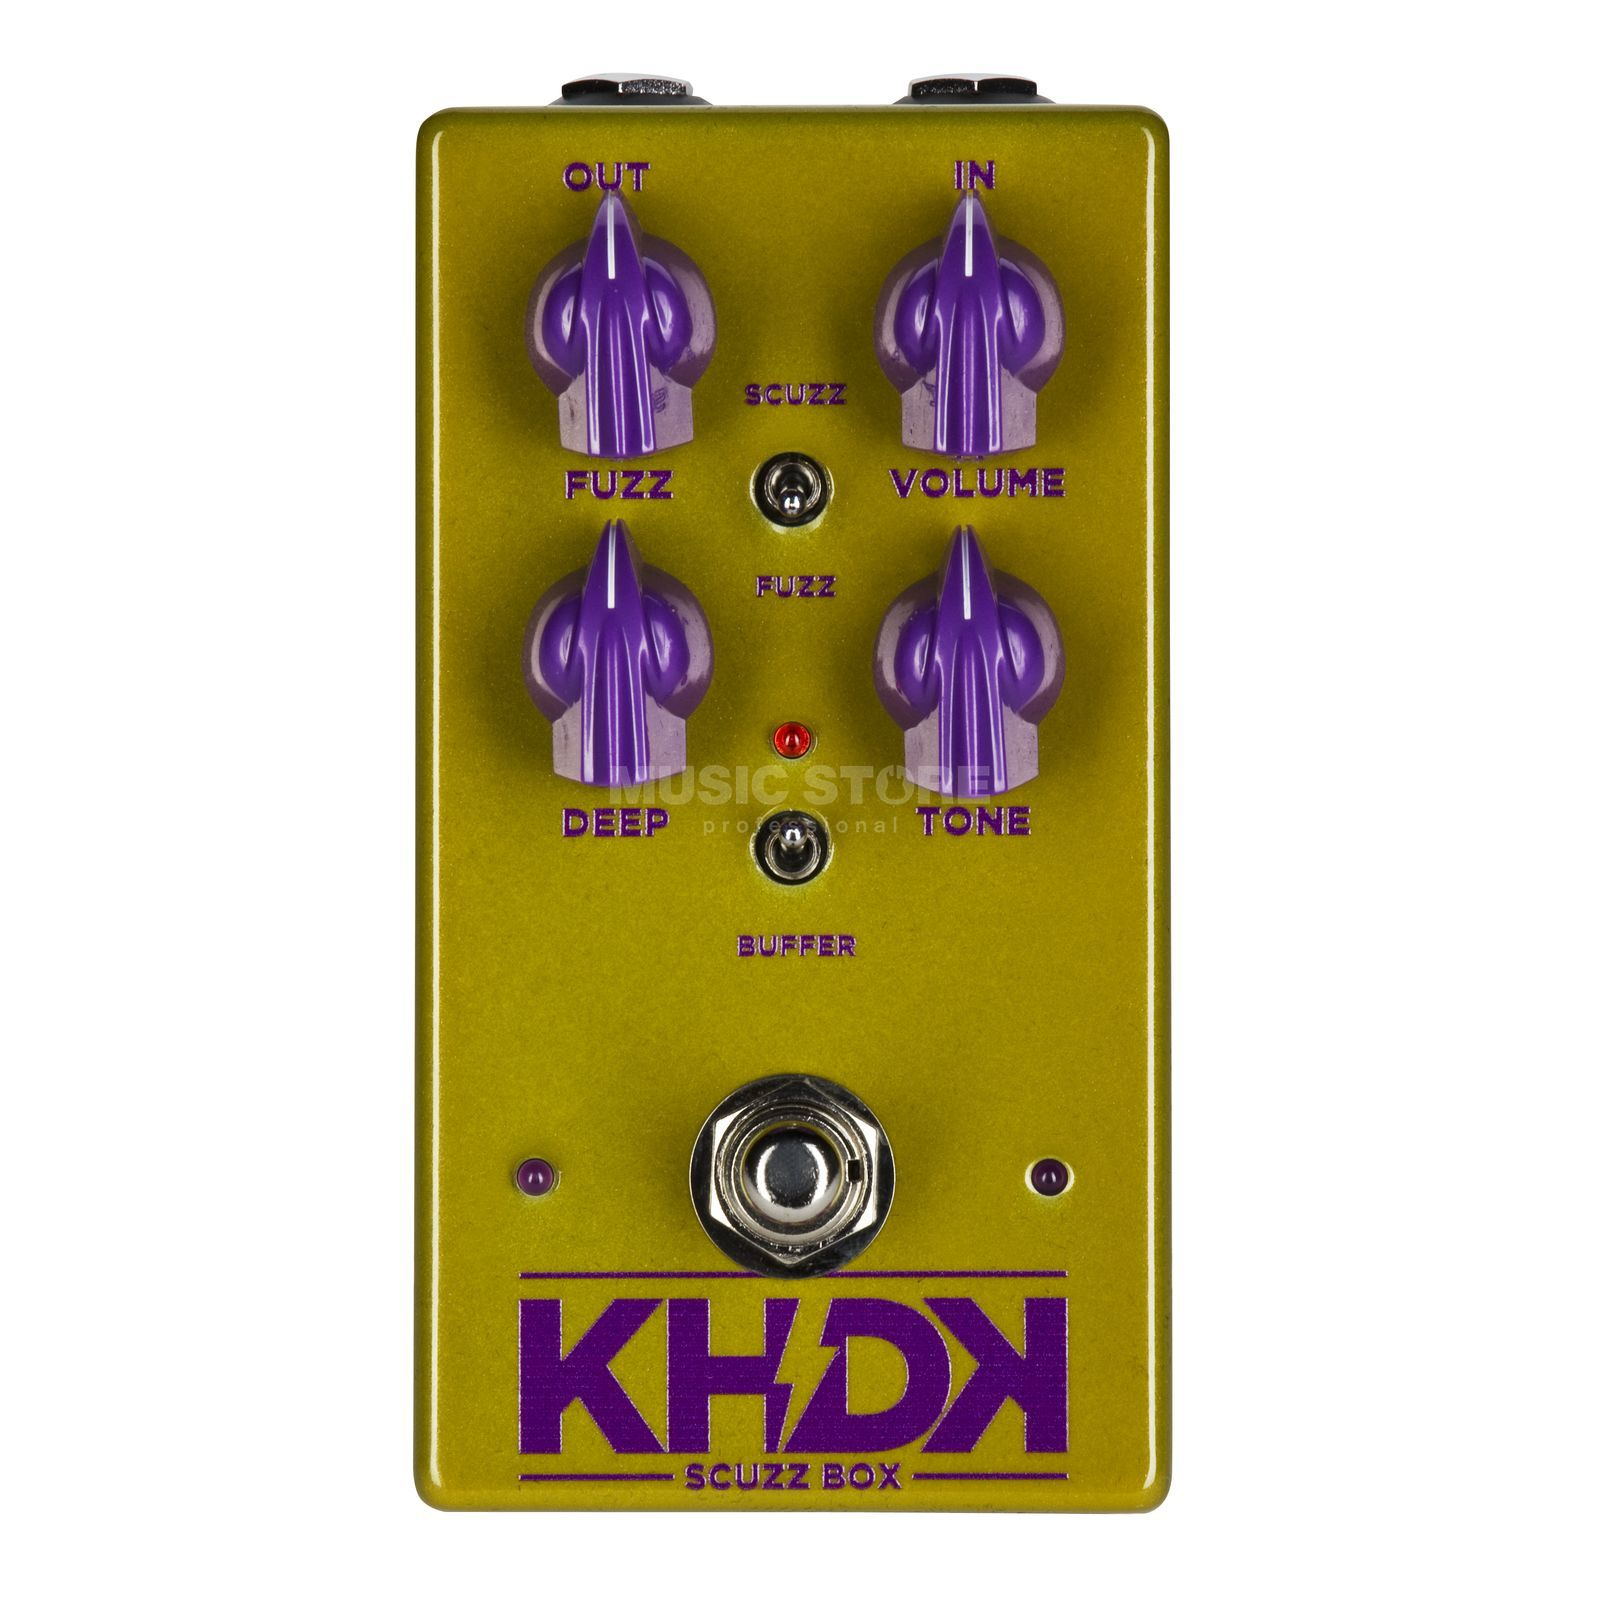 KHDK Scuzz Box Product Image